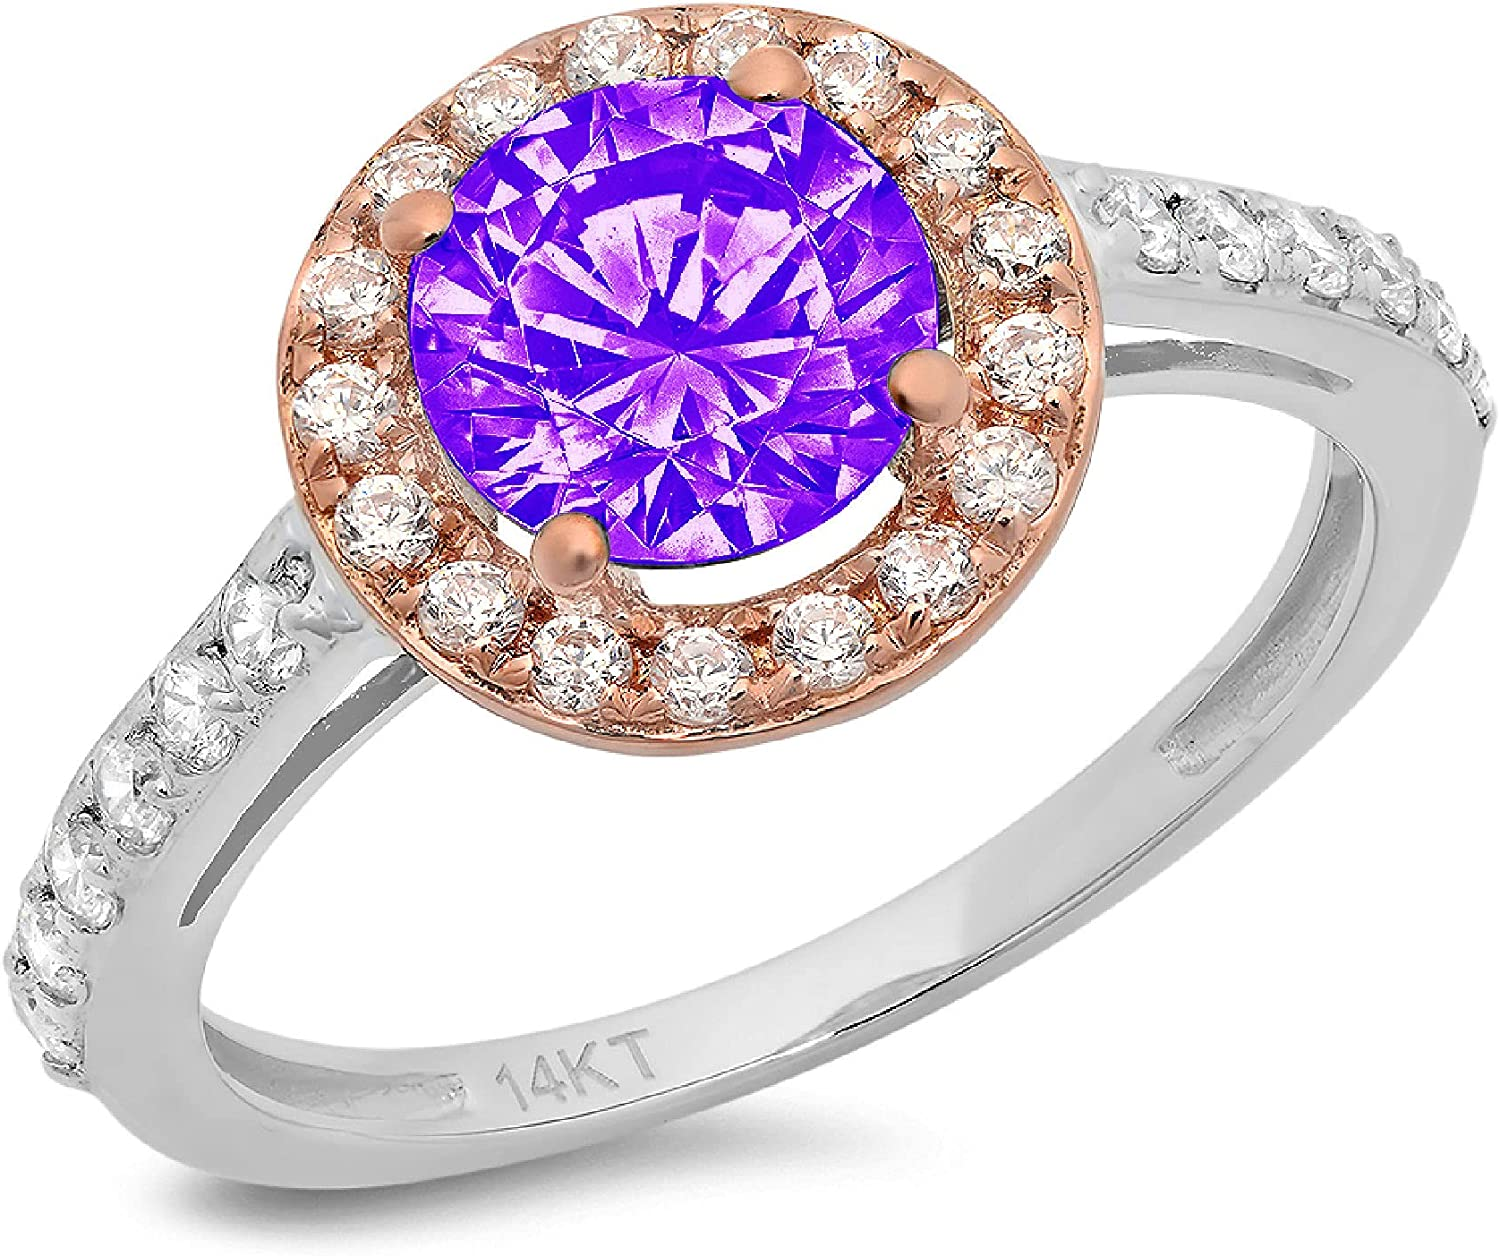 2.34ct Round Cut Solitaire Halo Natural Purple Amethyst Gem Stone Ideal VVS1 Engagement Promise Statement Anniversary Bridal Wedding Accent ring Solid 14k White & Pink Rose Gold